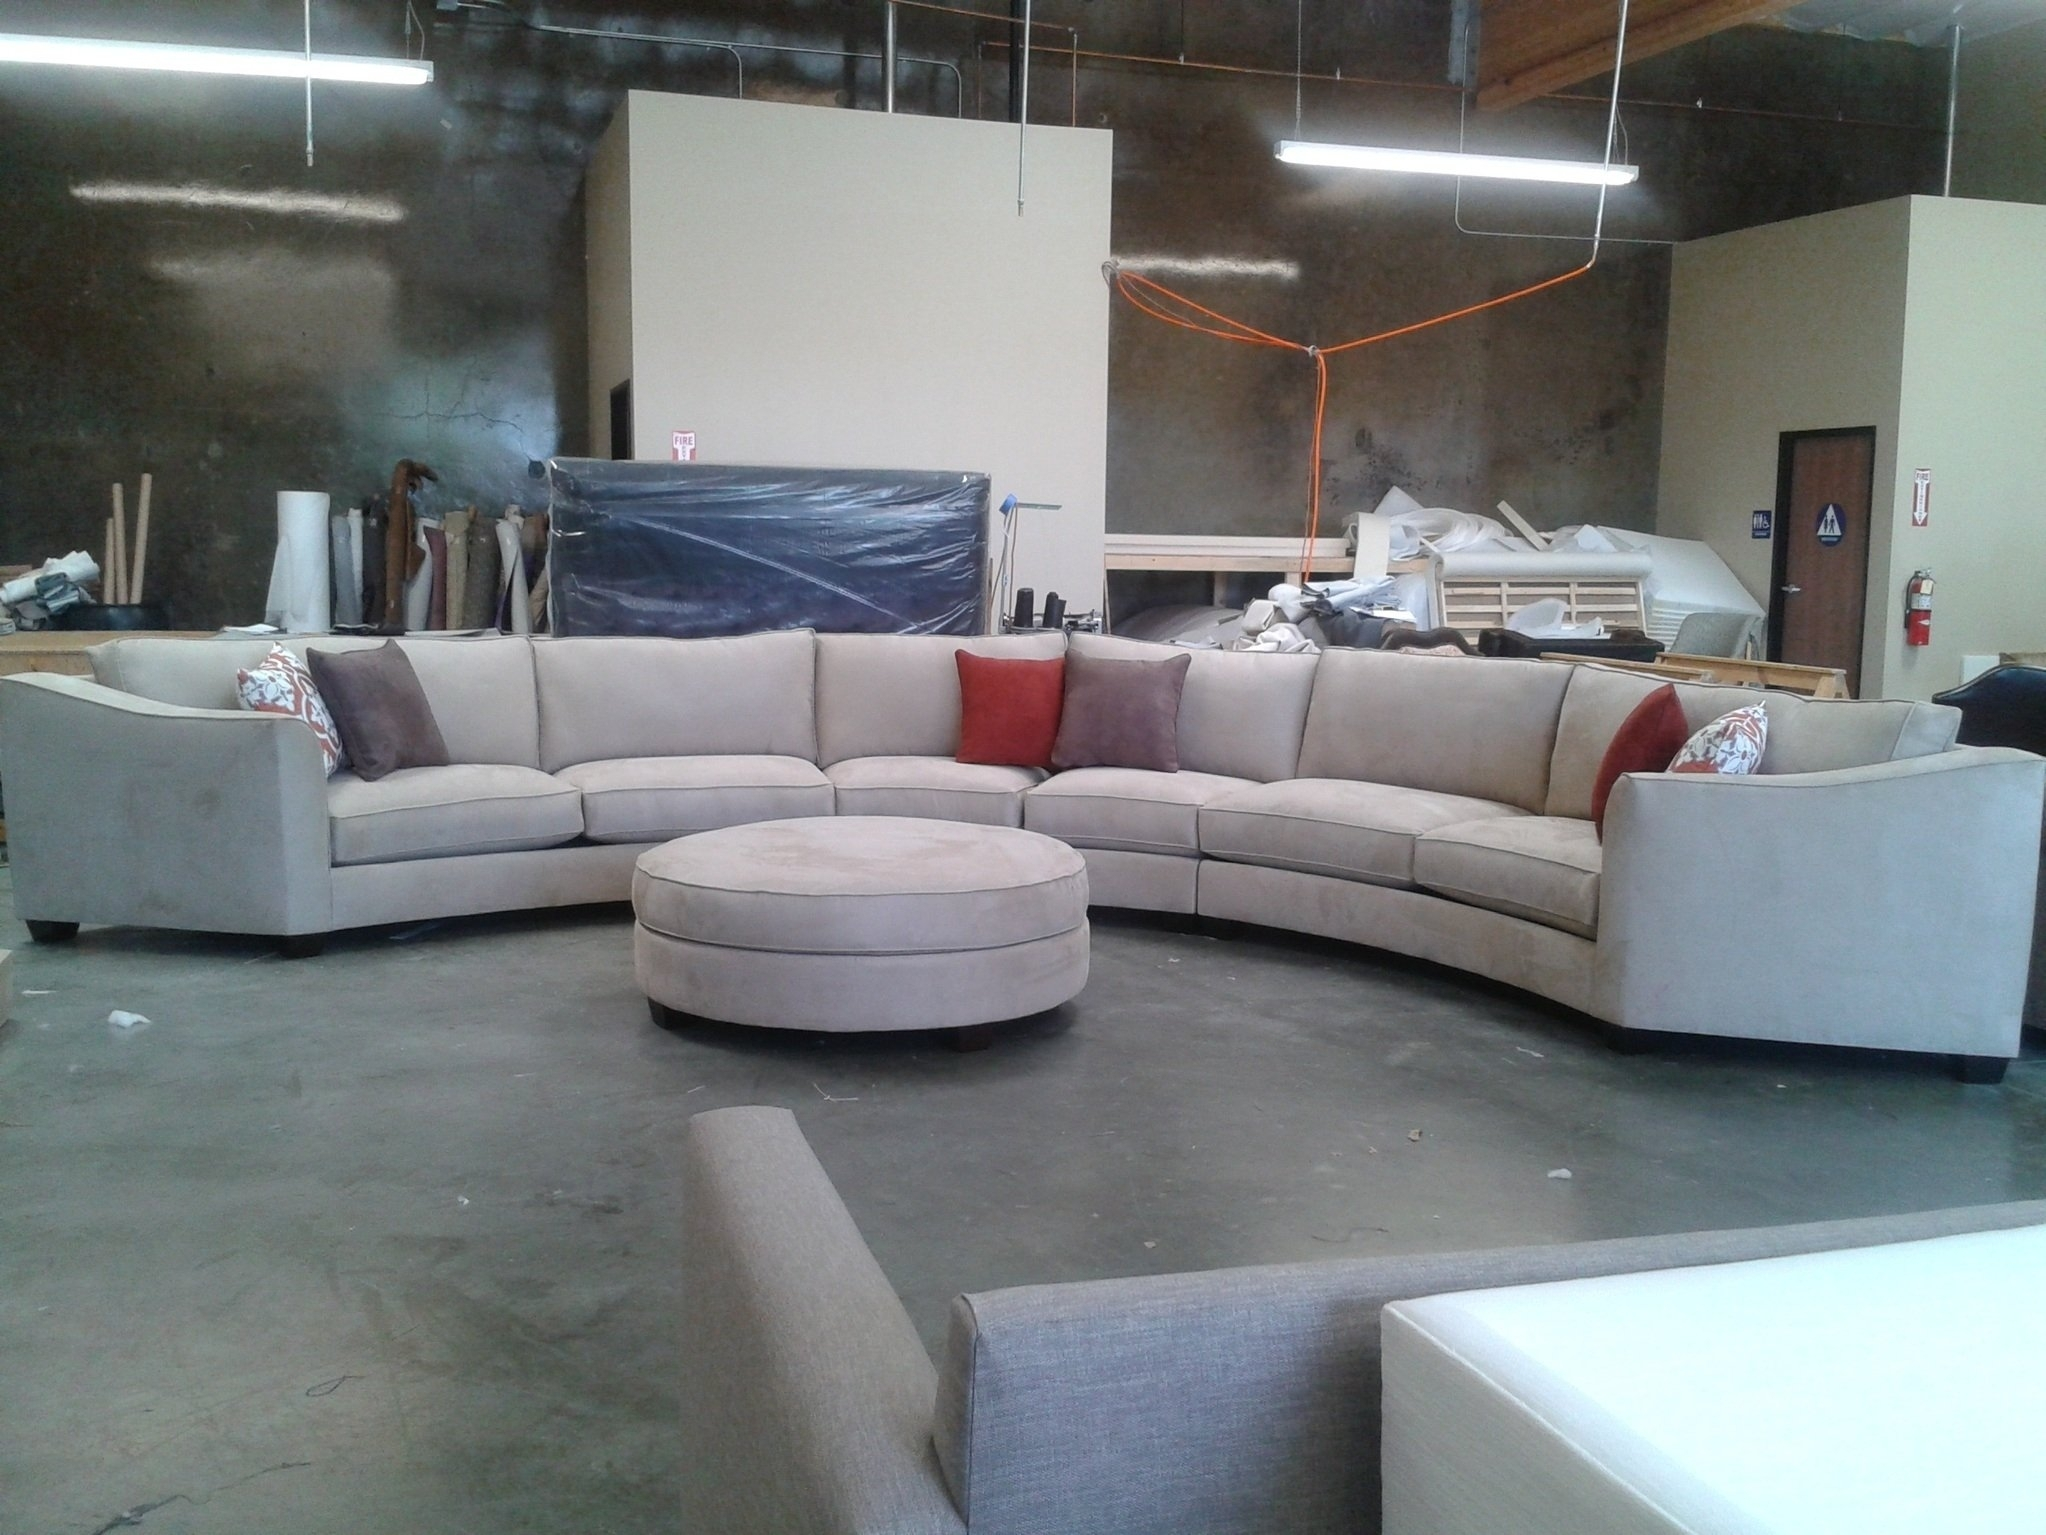 Curved Sectional Sofa Set Rich Comfortable Upholstered Fabric In Throughout Circular Sectional Sofas (Image 2 of 10)